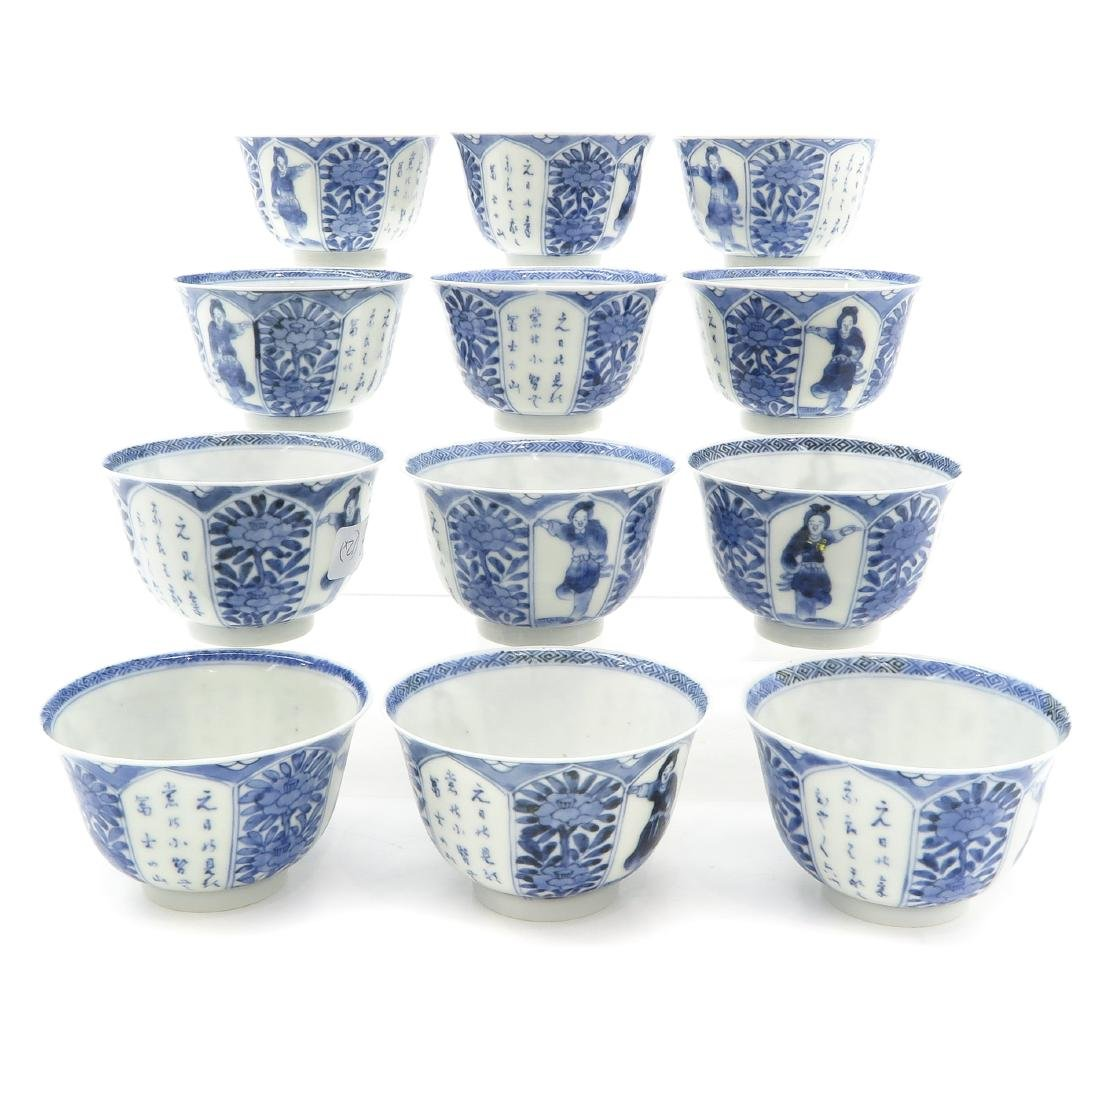 Lot of 12 Cups - 2